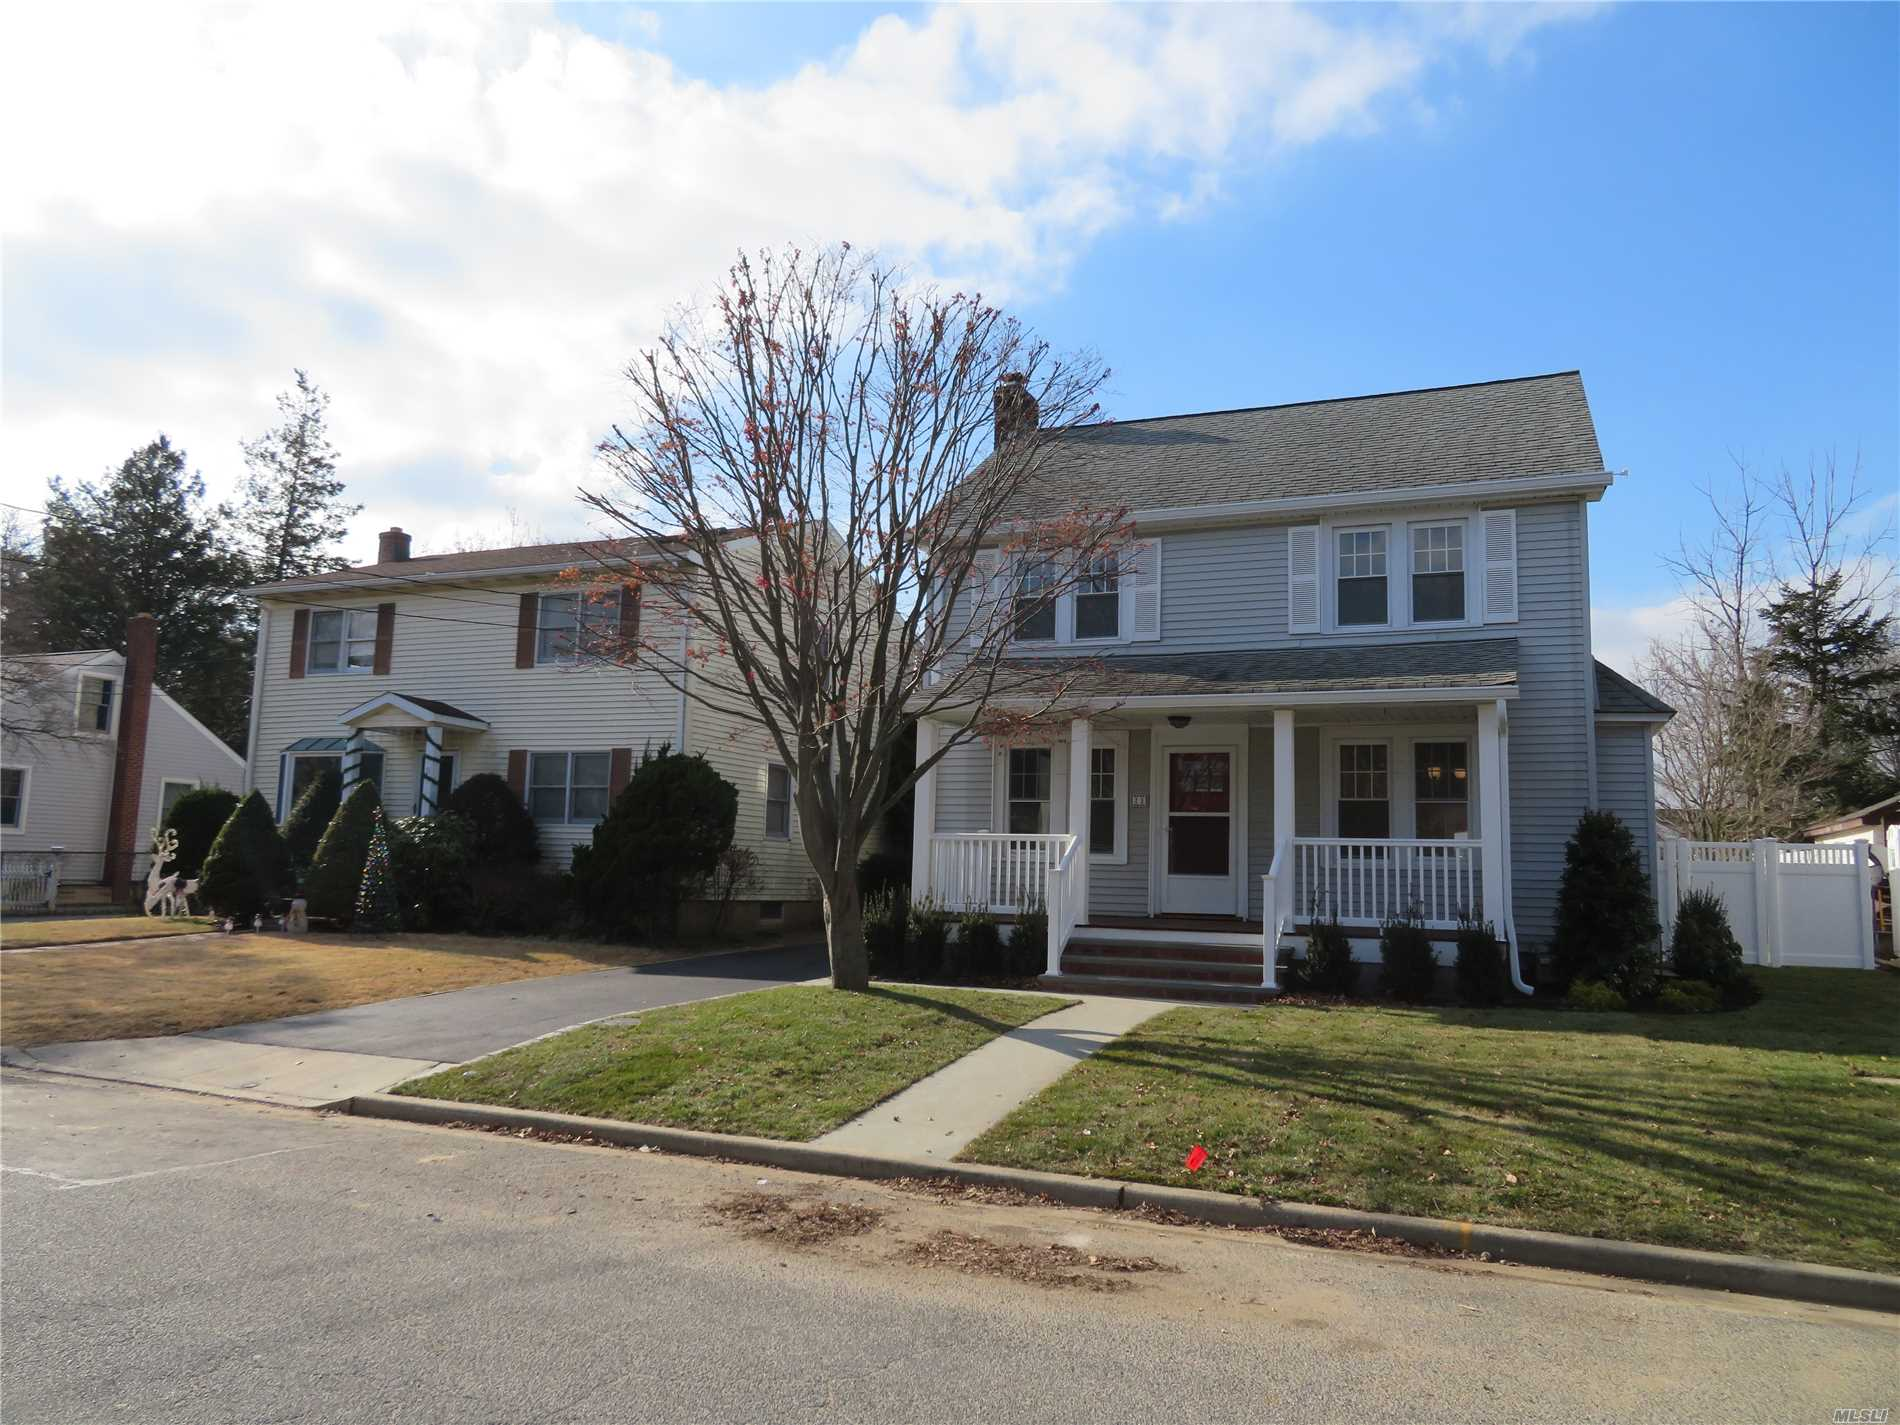 Totally Redone House, New Kitchen, New Bathrooms, Cac, W & D, Lrm/Fp, Fdrm, Pr, Mbrm, Mbath, 2 Brms, 1Bath, Detached 1 Car Garage, Lovely Porch, Professionally Landscaped,  A Must See!!!!